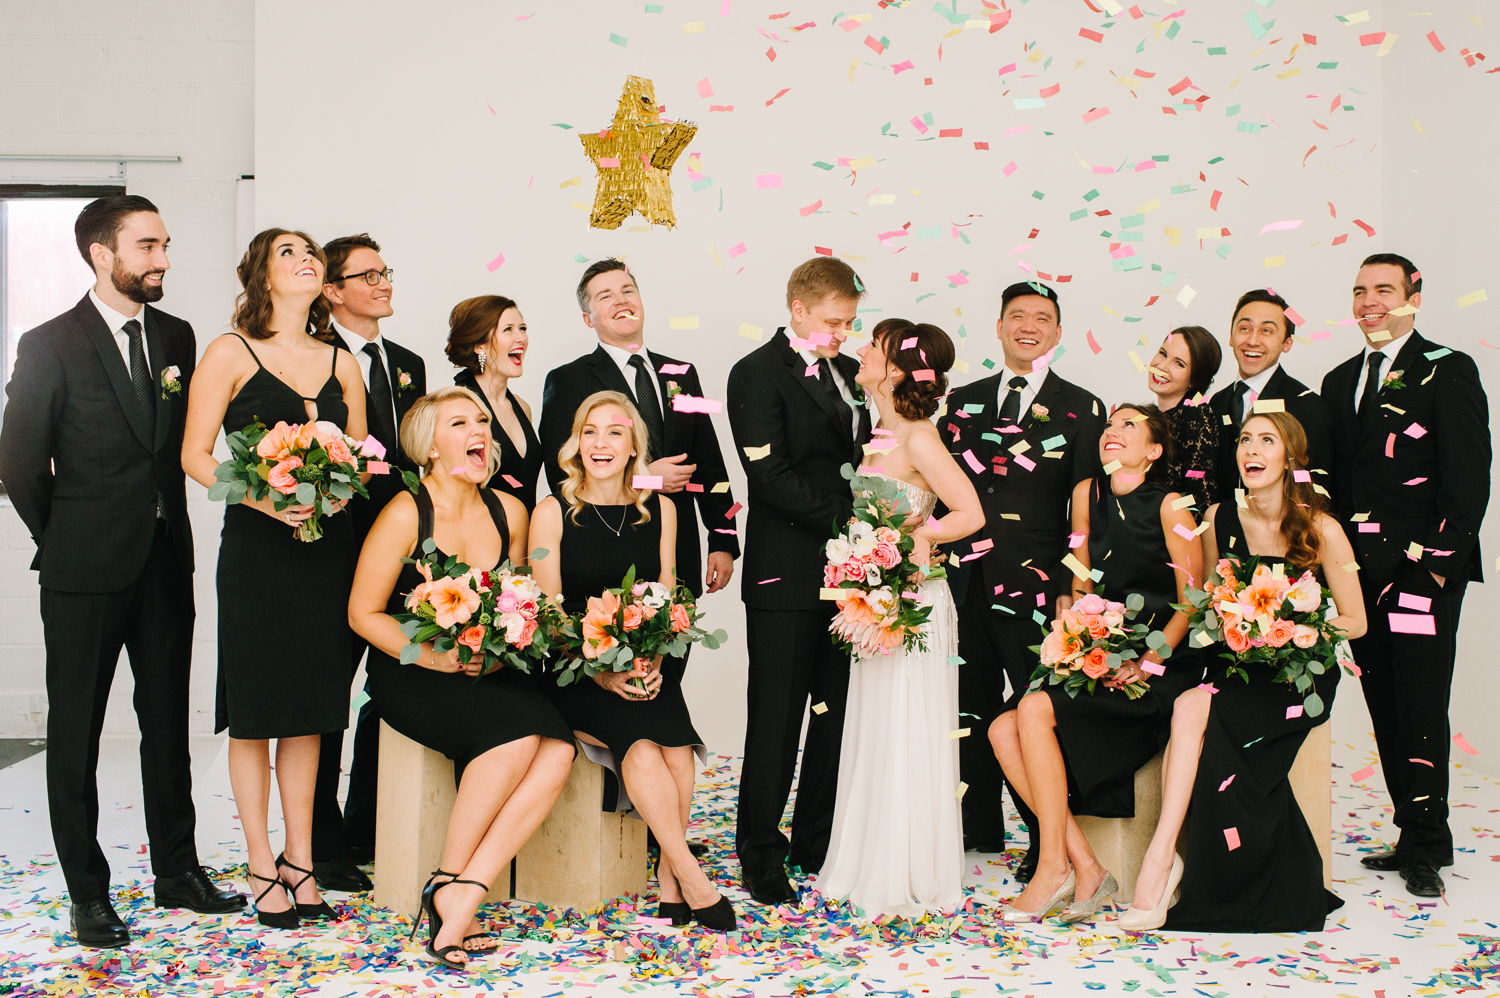 tara mcmullen photography four seasons toronto wedding photos jesi haack design wedding love by lynzie wedding confetti and champagne-022